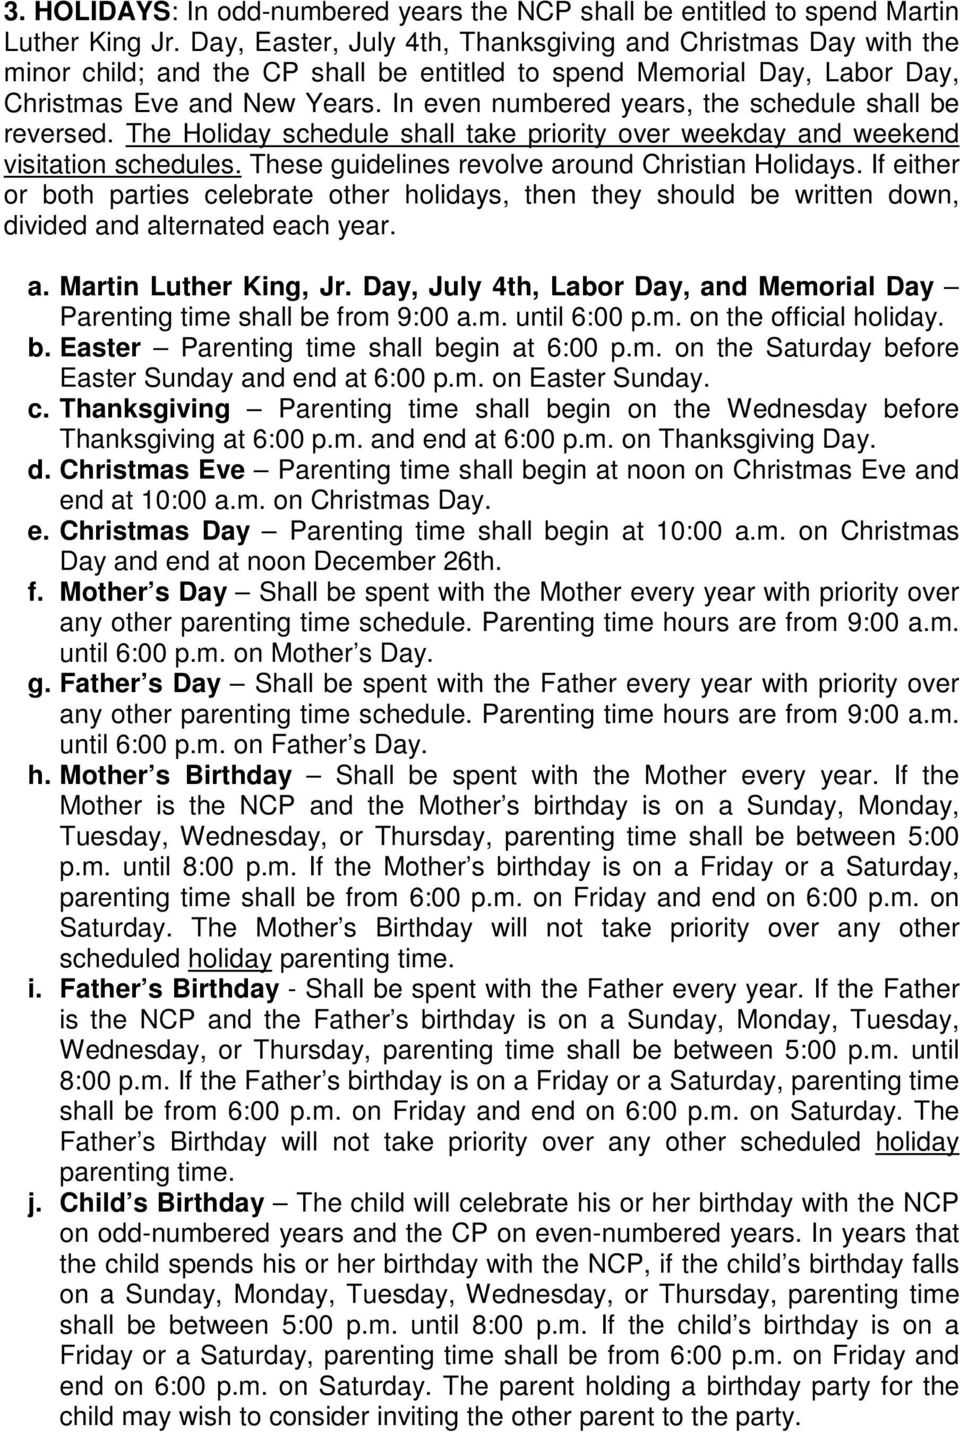 In even numbered years, the schedule shall be reversed. The Holiday schedule shall take priority over weekday and weekend visitation schedules. These guidelines revolve around Christian Holidays.